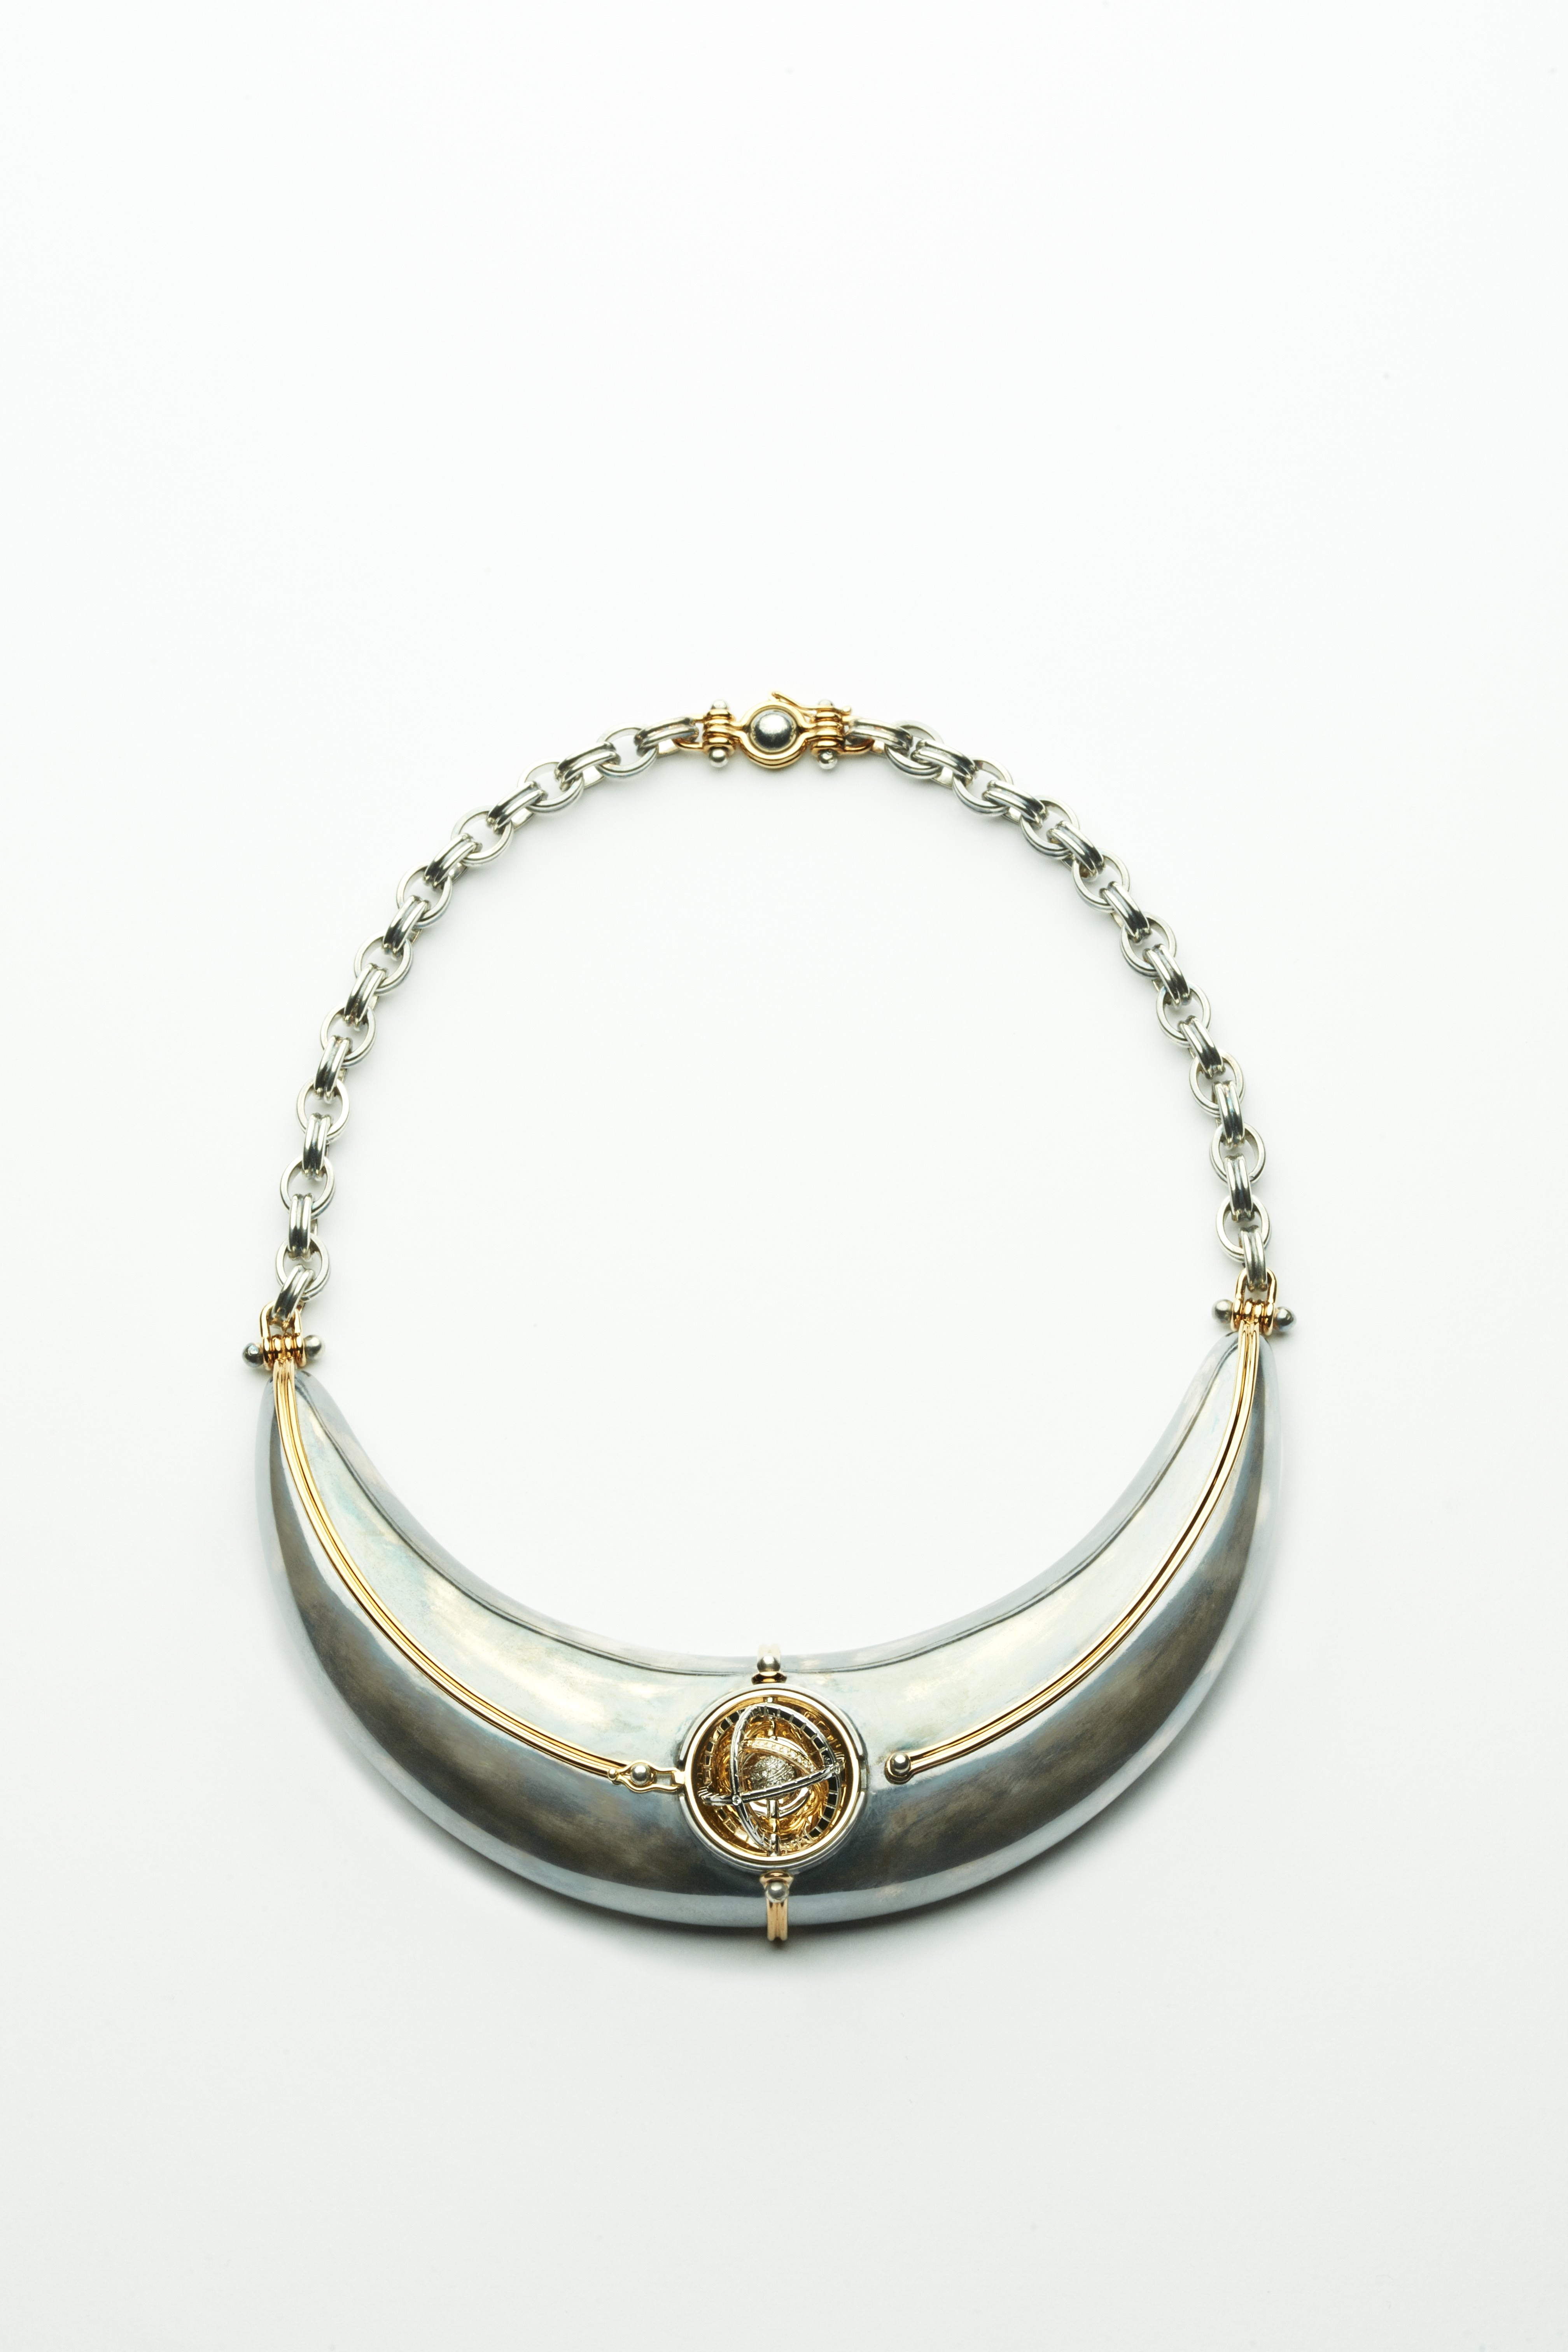 Stellar jewels in Elie Top's first collection